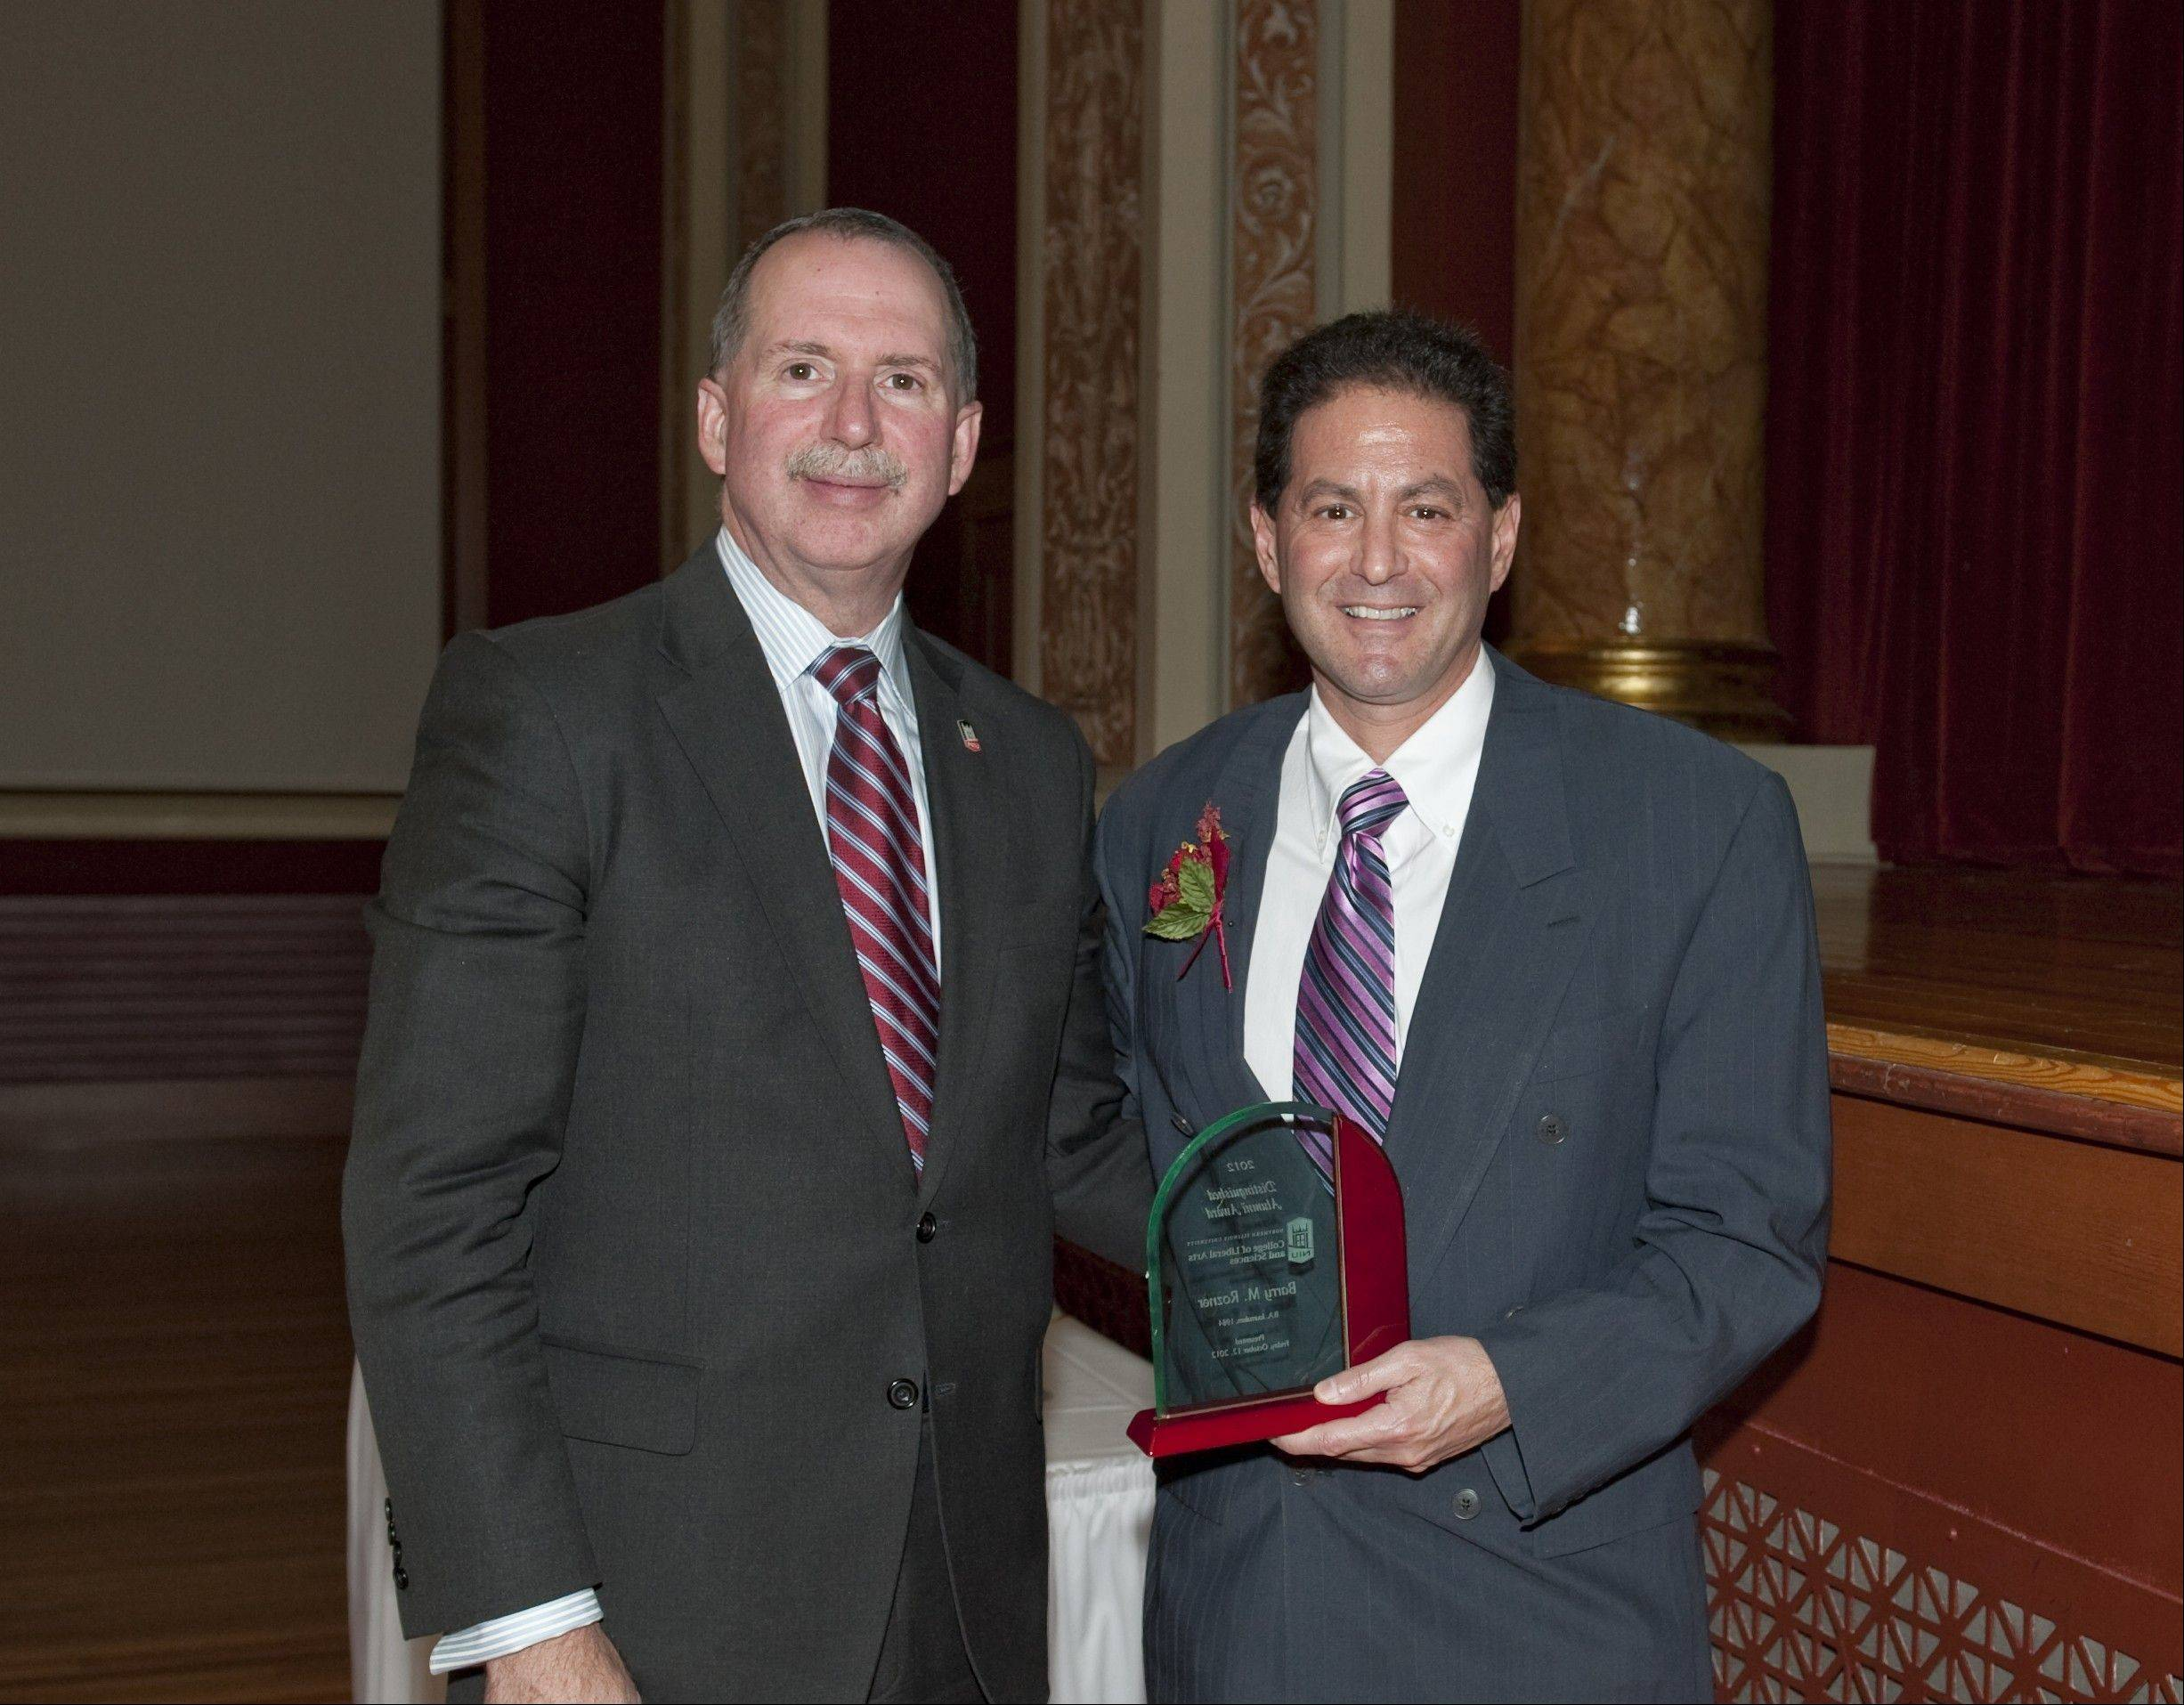 Daily Herald columnist Barry Rozner was presented Friday with a Distinguished Alumni Award by Christopher McCord, the dean of the College of Liberal Arts and Sciences at Northern Illinois University.